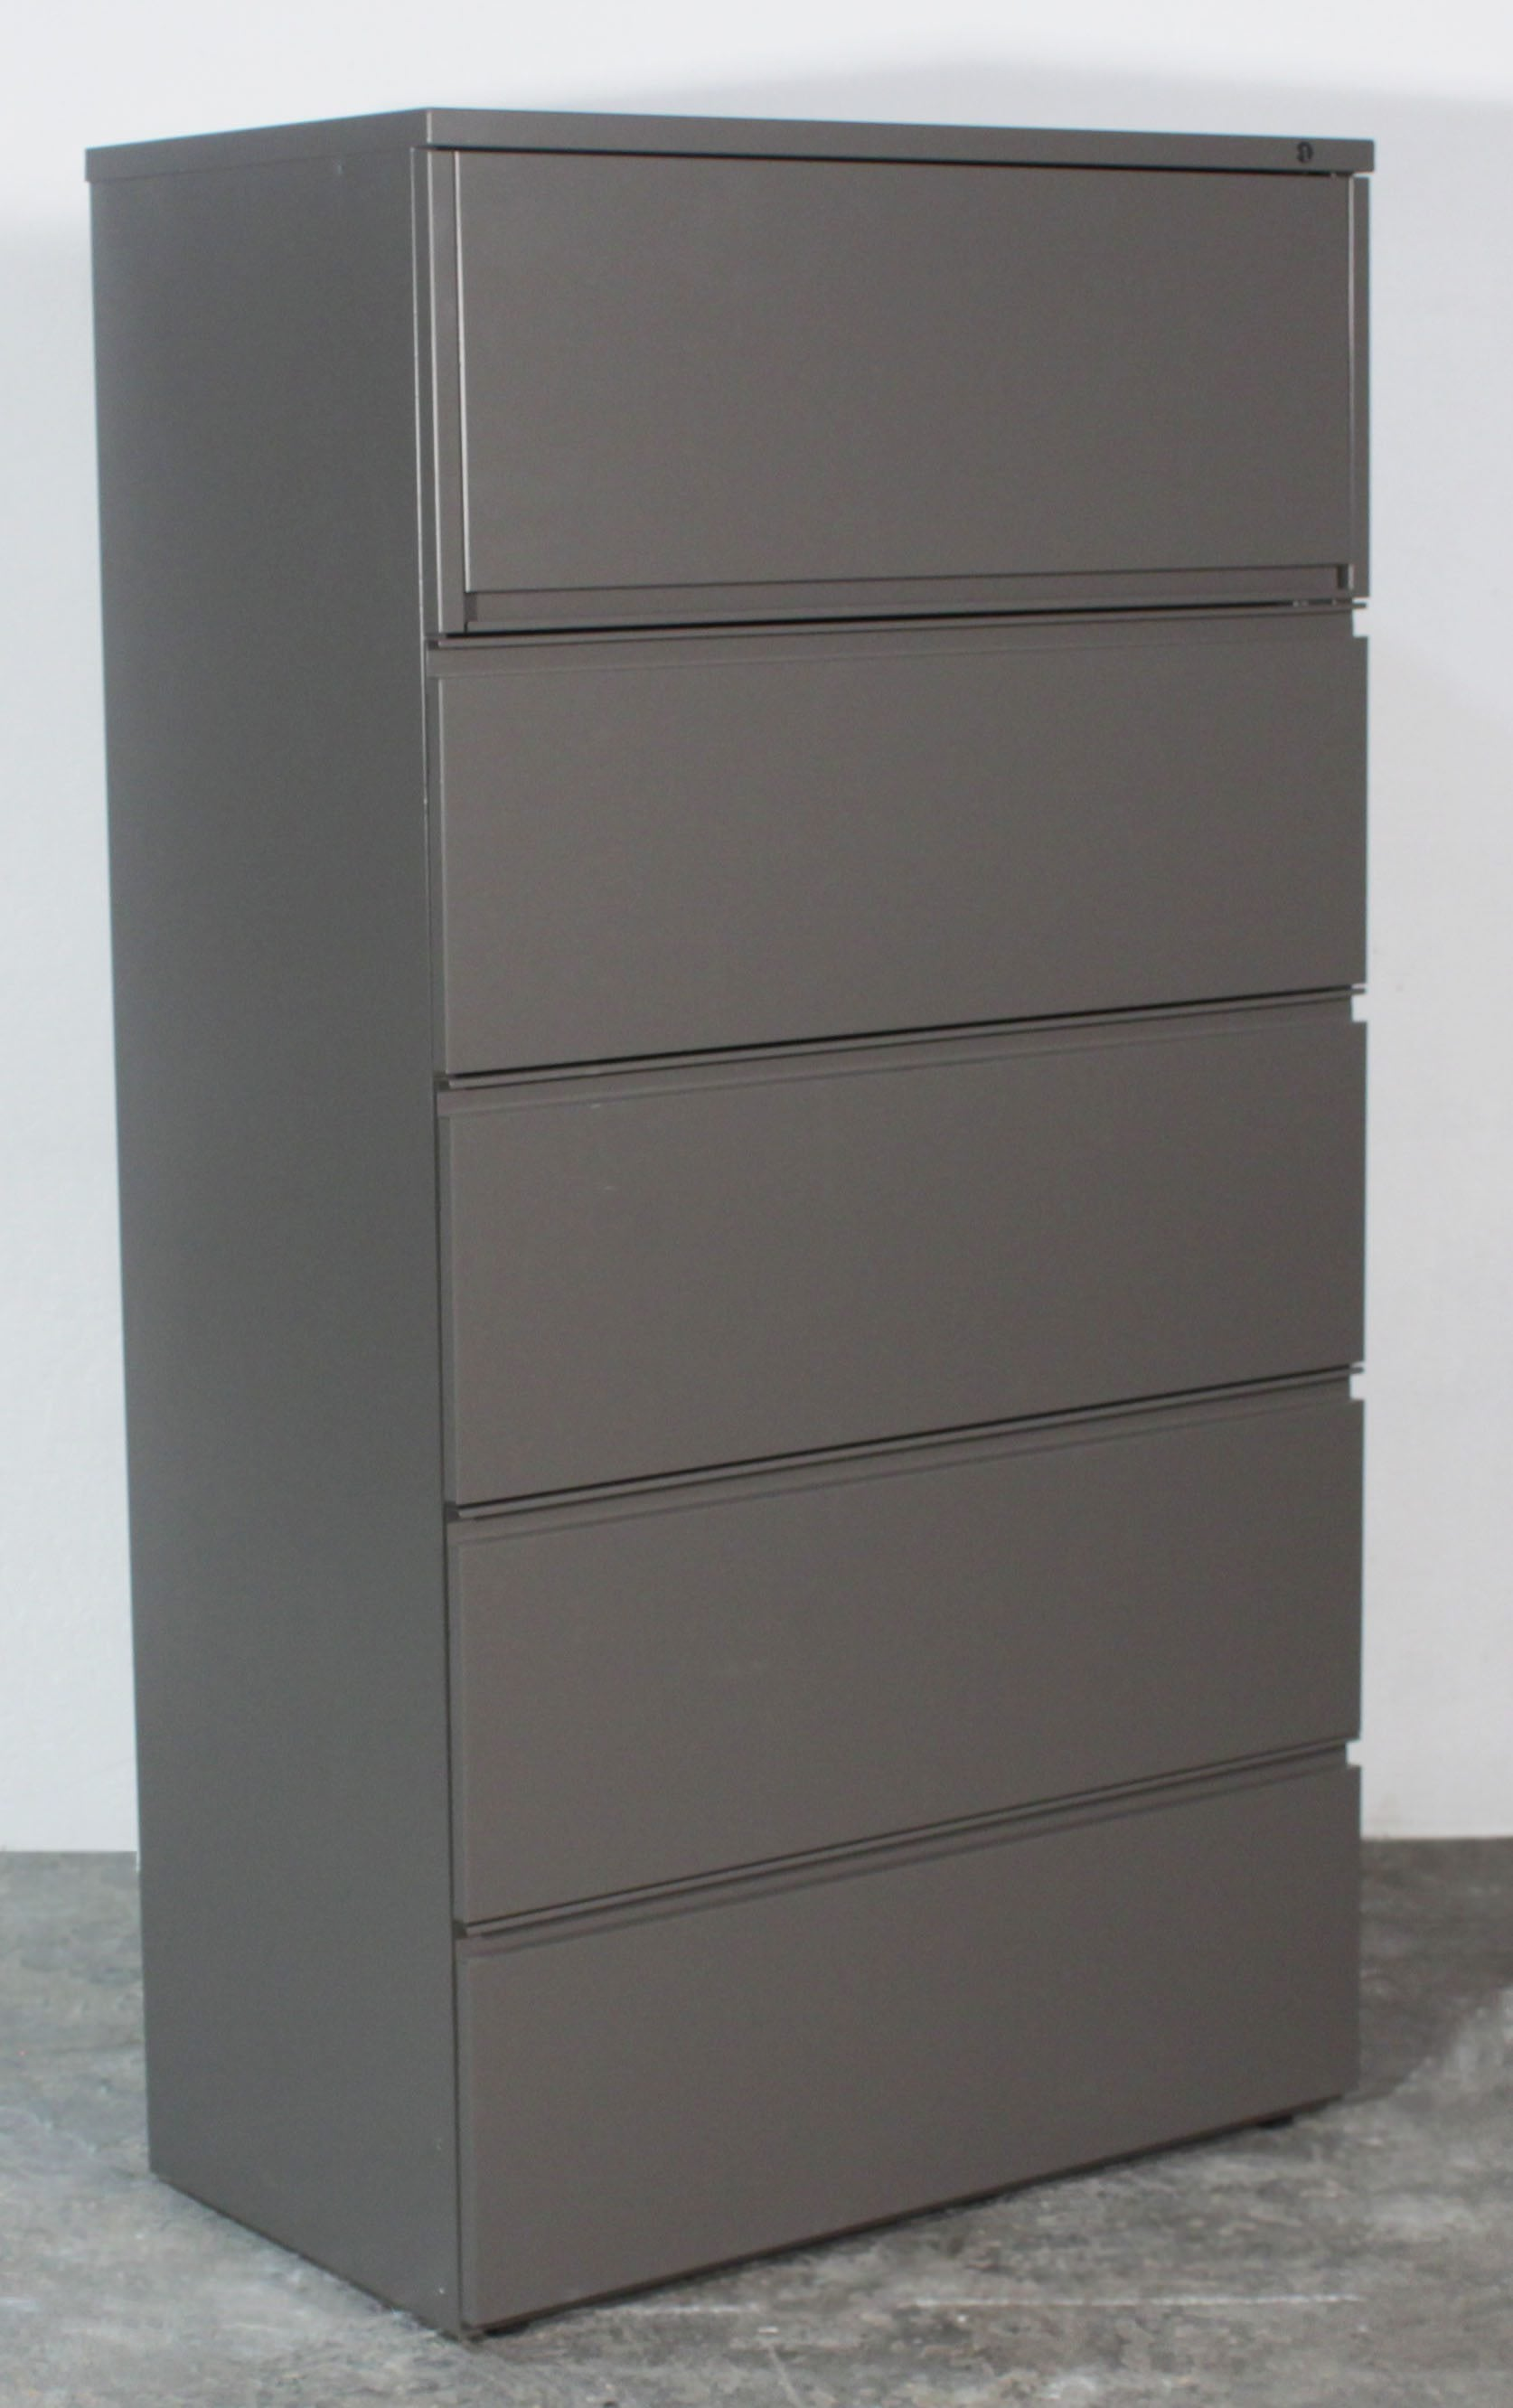 cheap lock black storage drawers keys modern of with full small hon cabinet for size file lateral desk espresso metal drawer filing cherry sale office cabinets realspace wood home